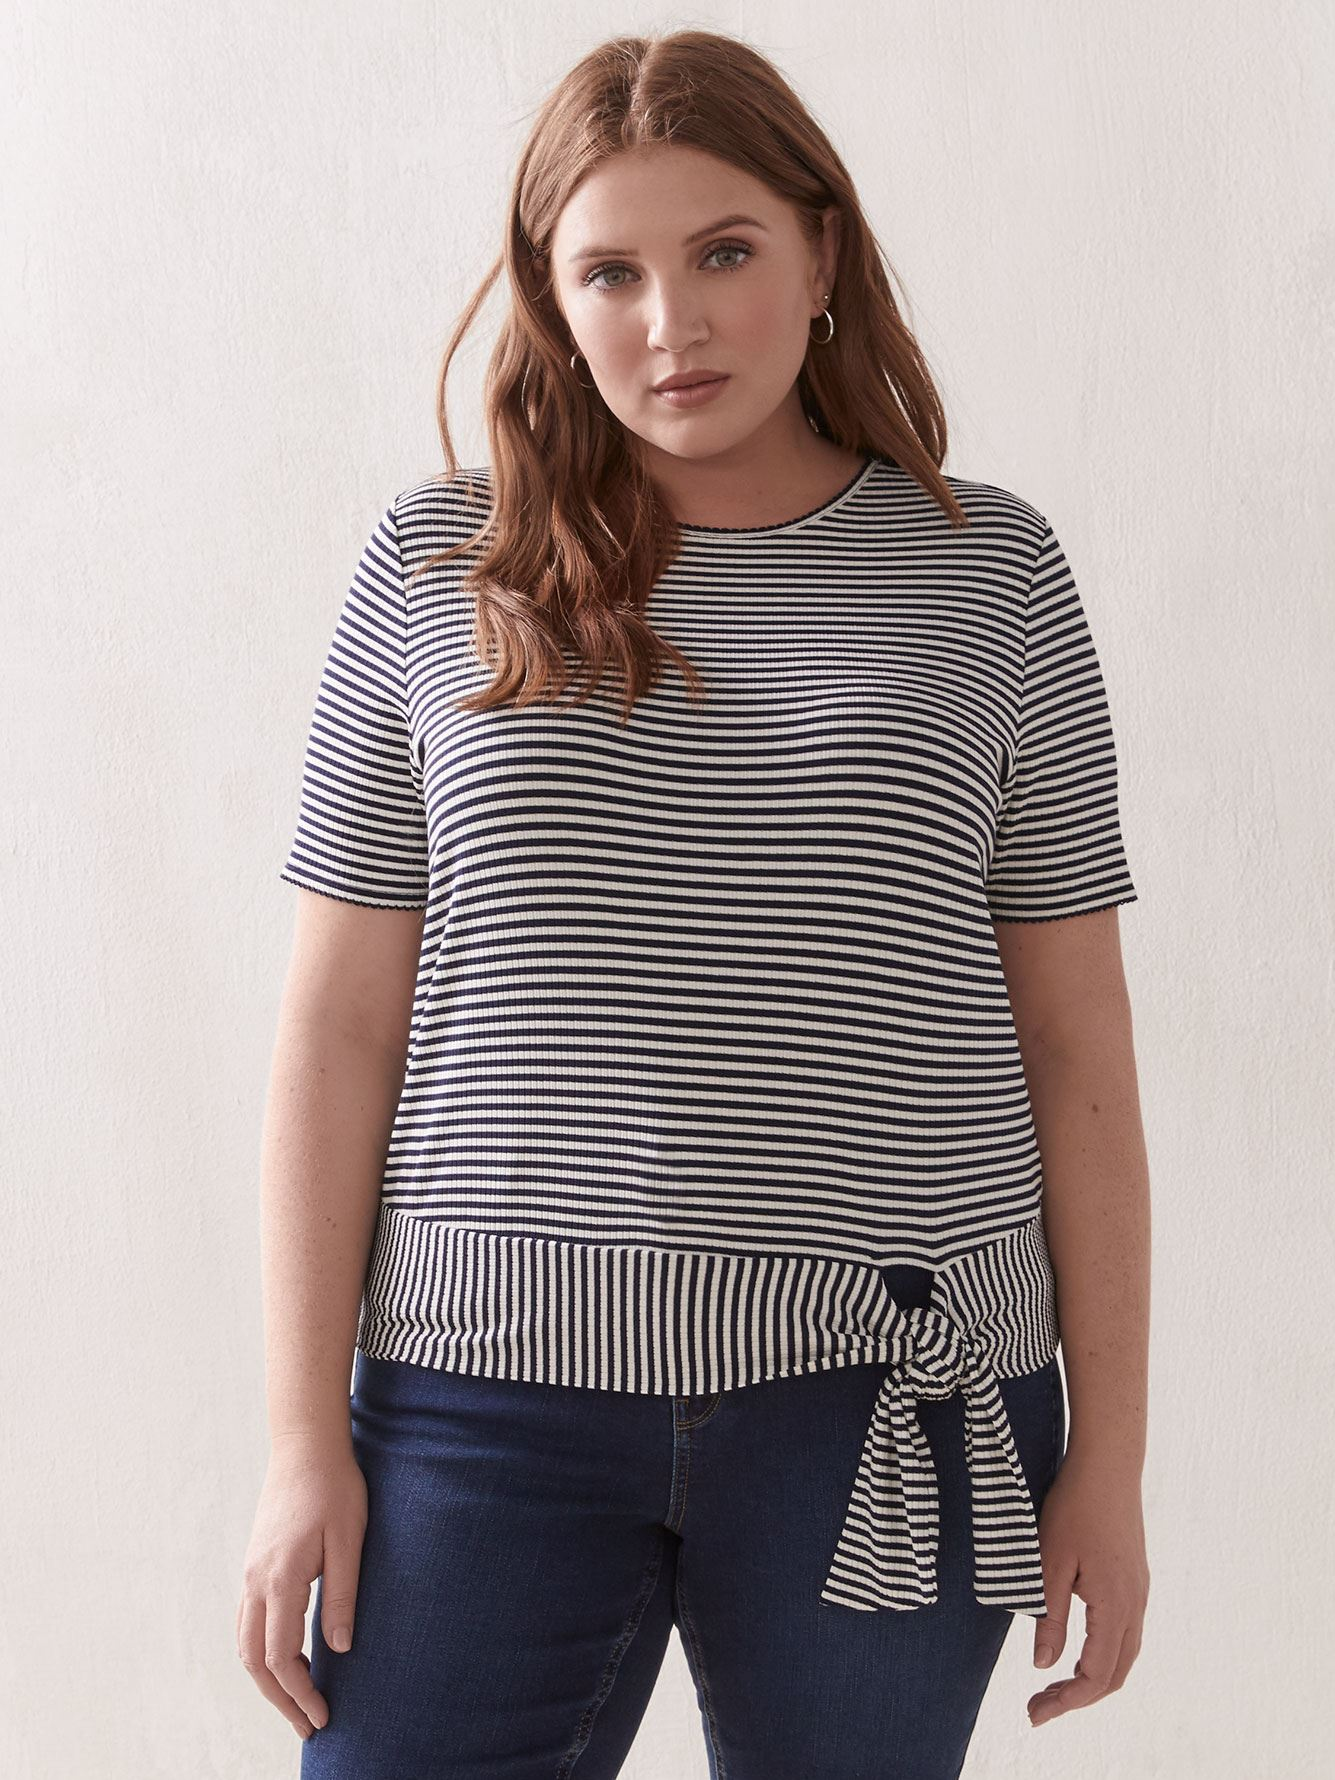 Easy Wear Scallop Knit Crepe Boatneck Plus Size Top 3